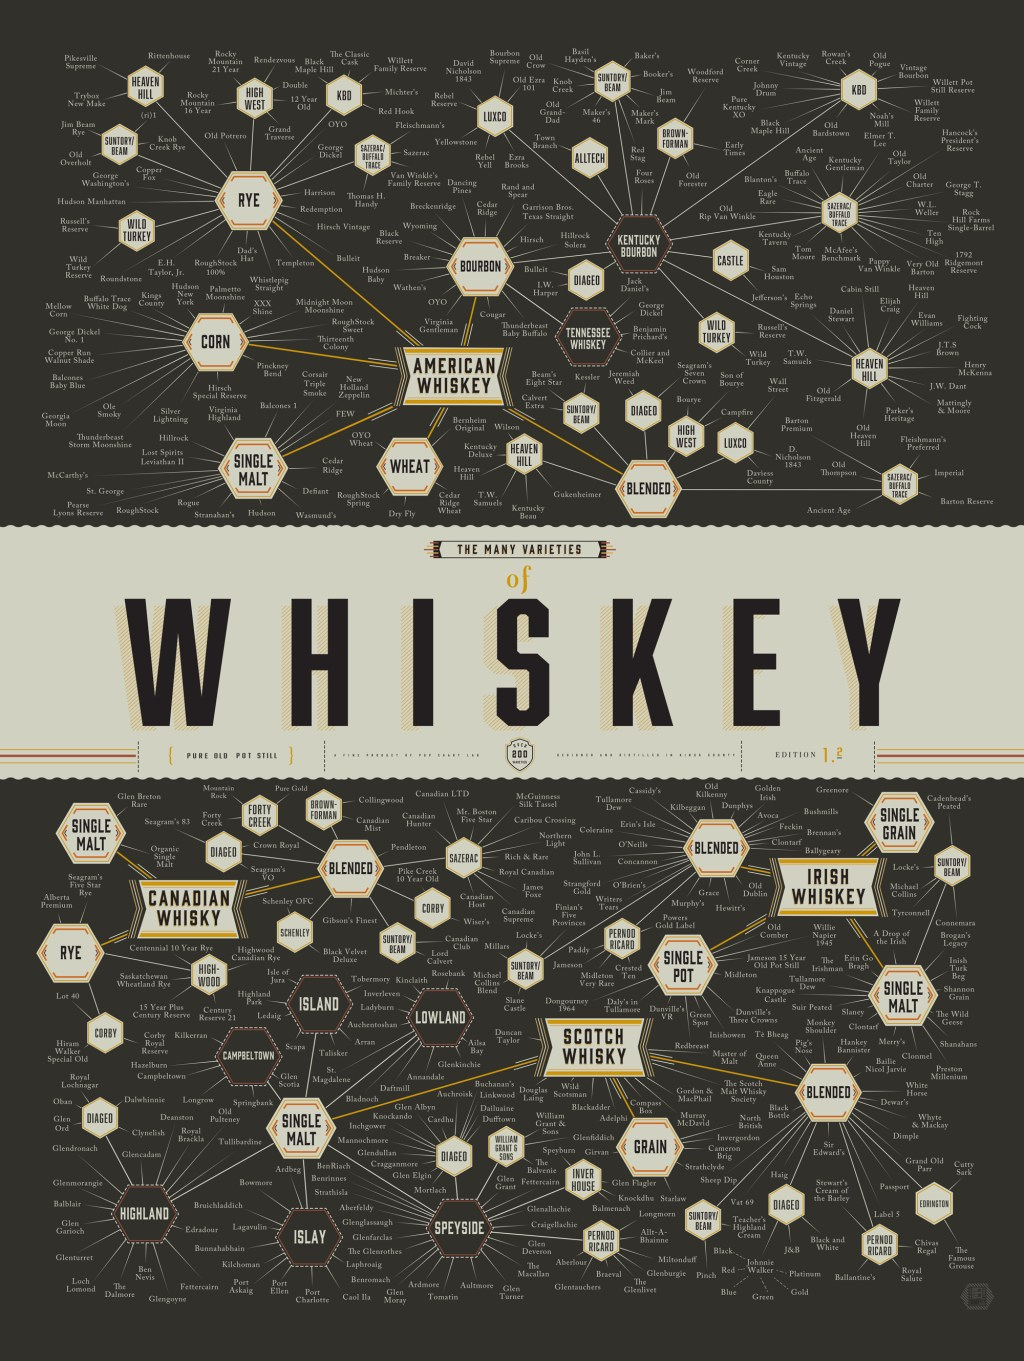 the-many-varieties-of-whiskey